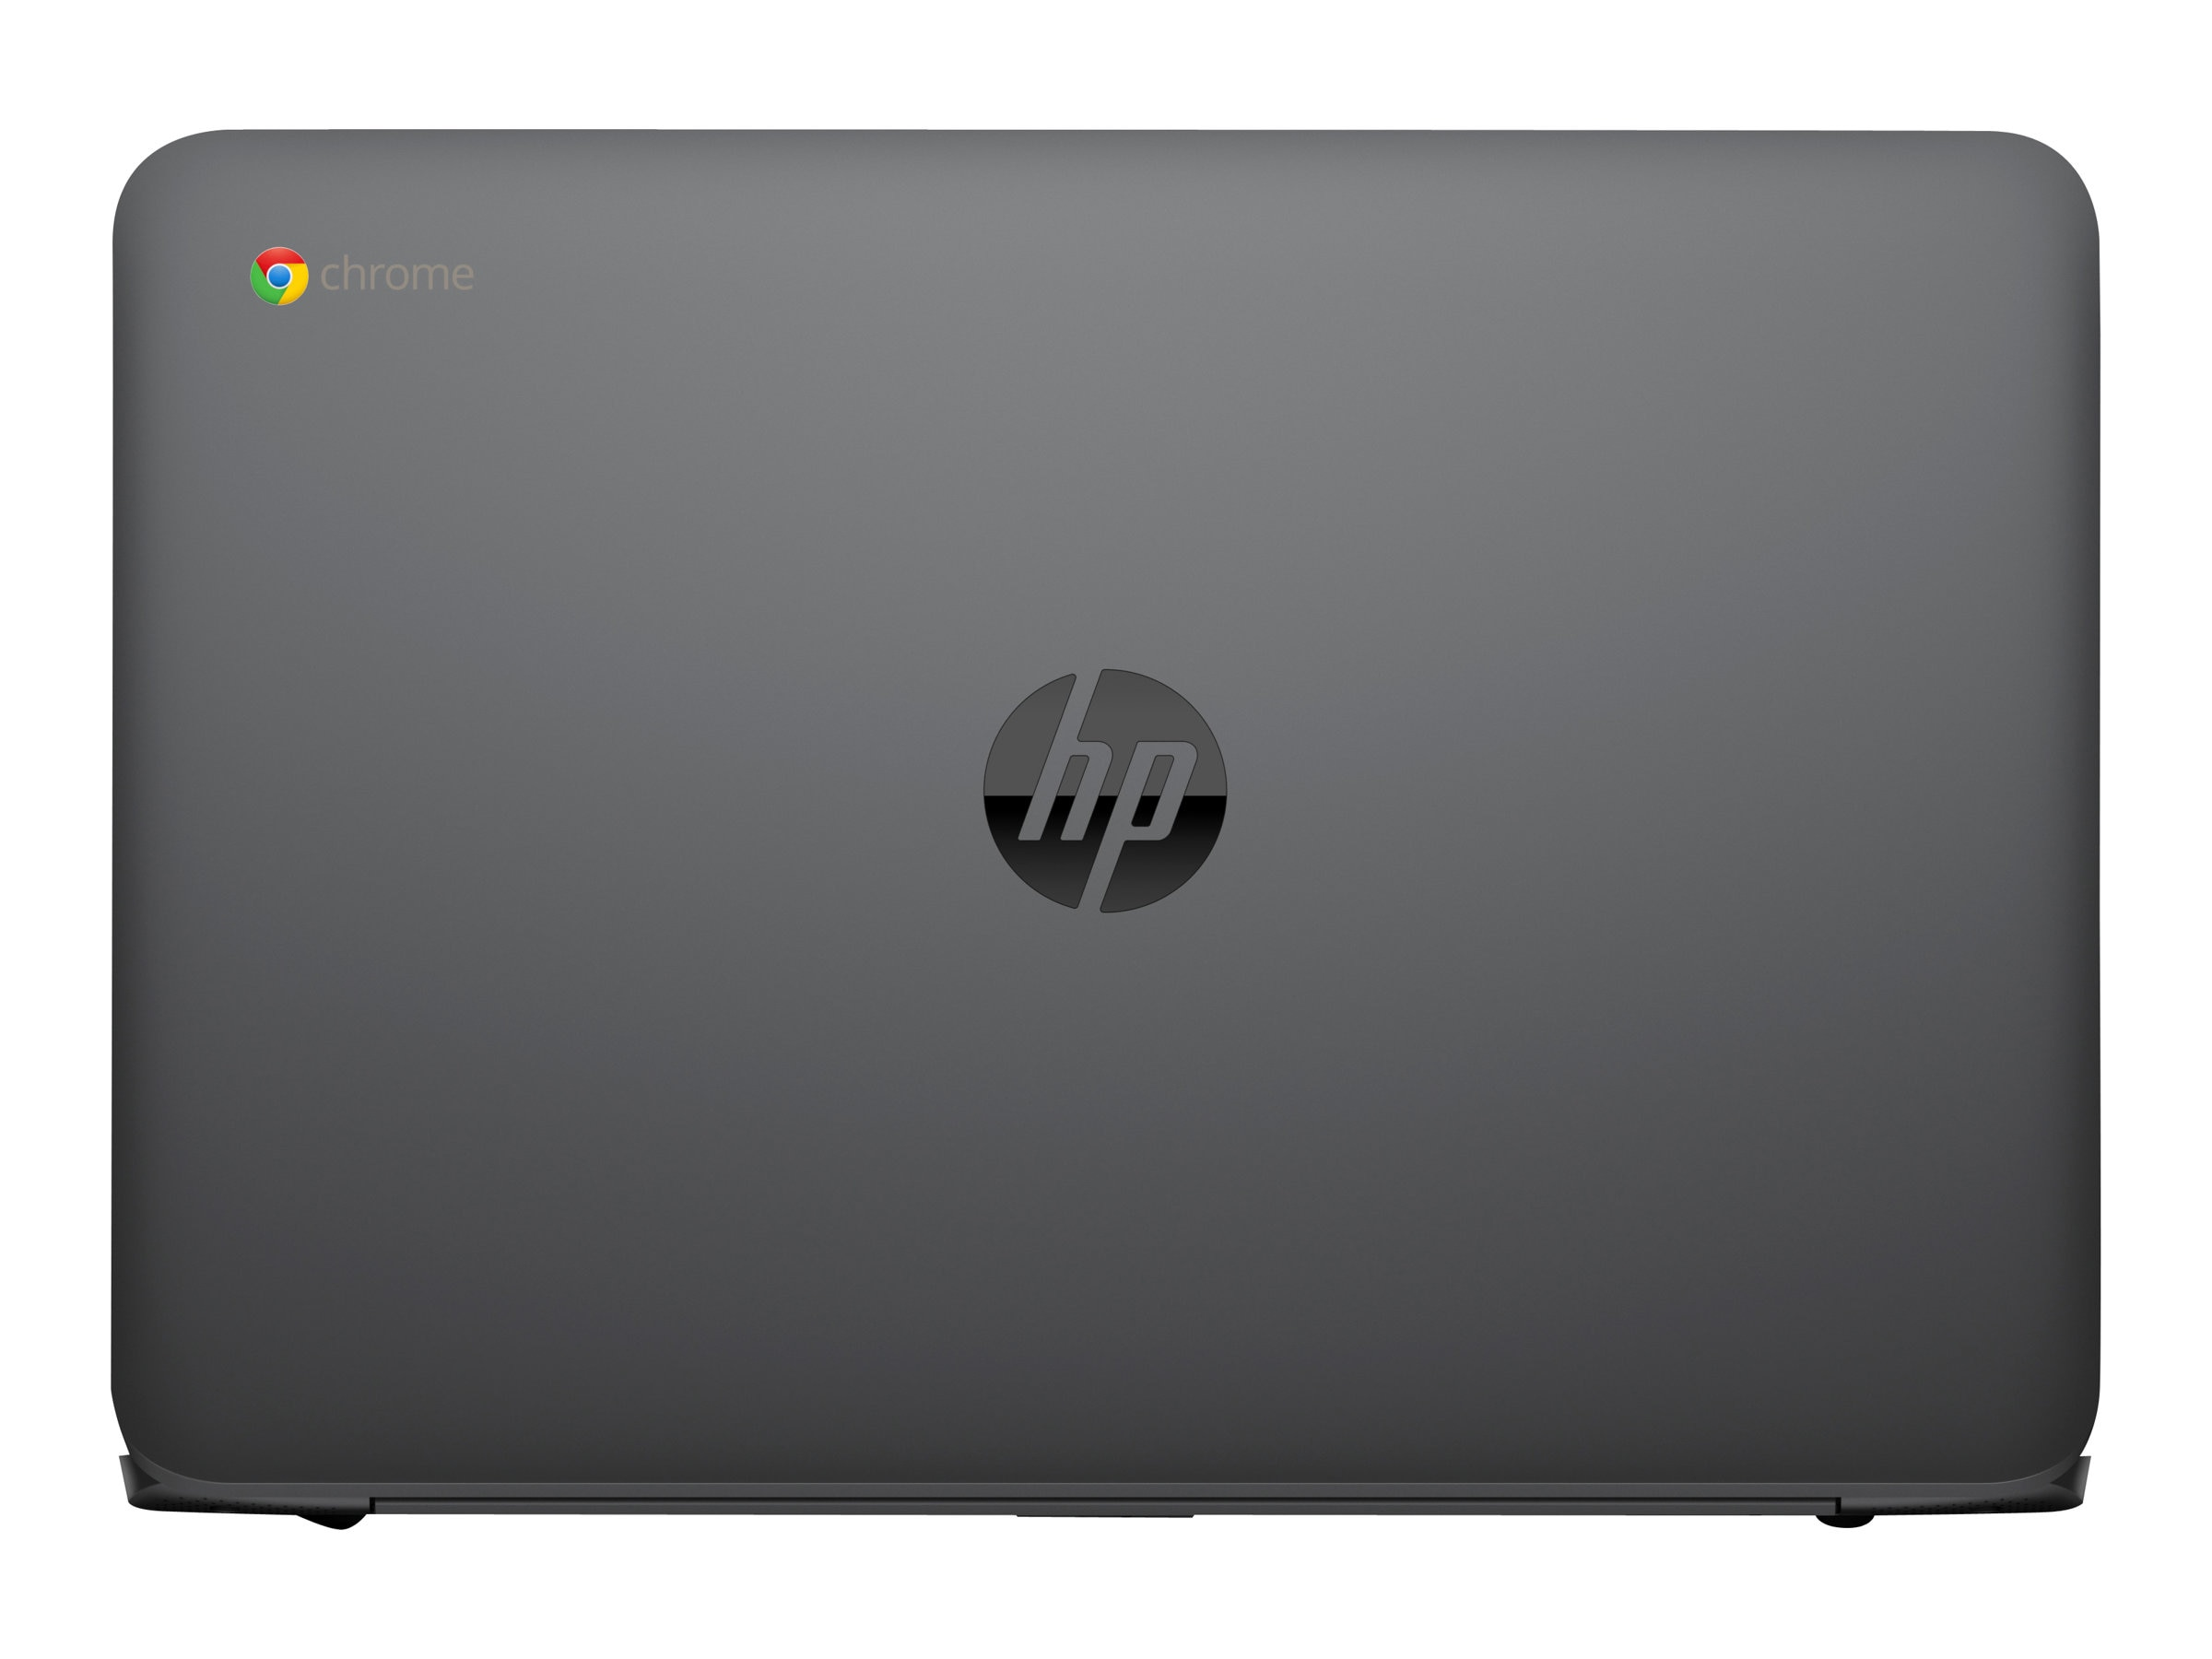 HP Chromebook 14 G4 1.83GHz Celeron 14in display, T4M34UT#ABA